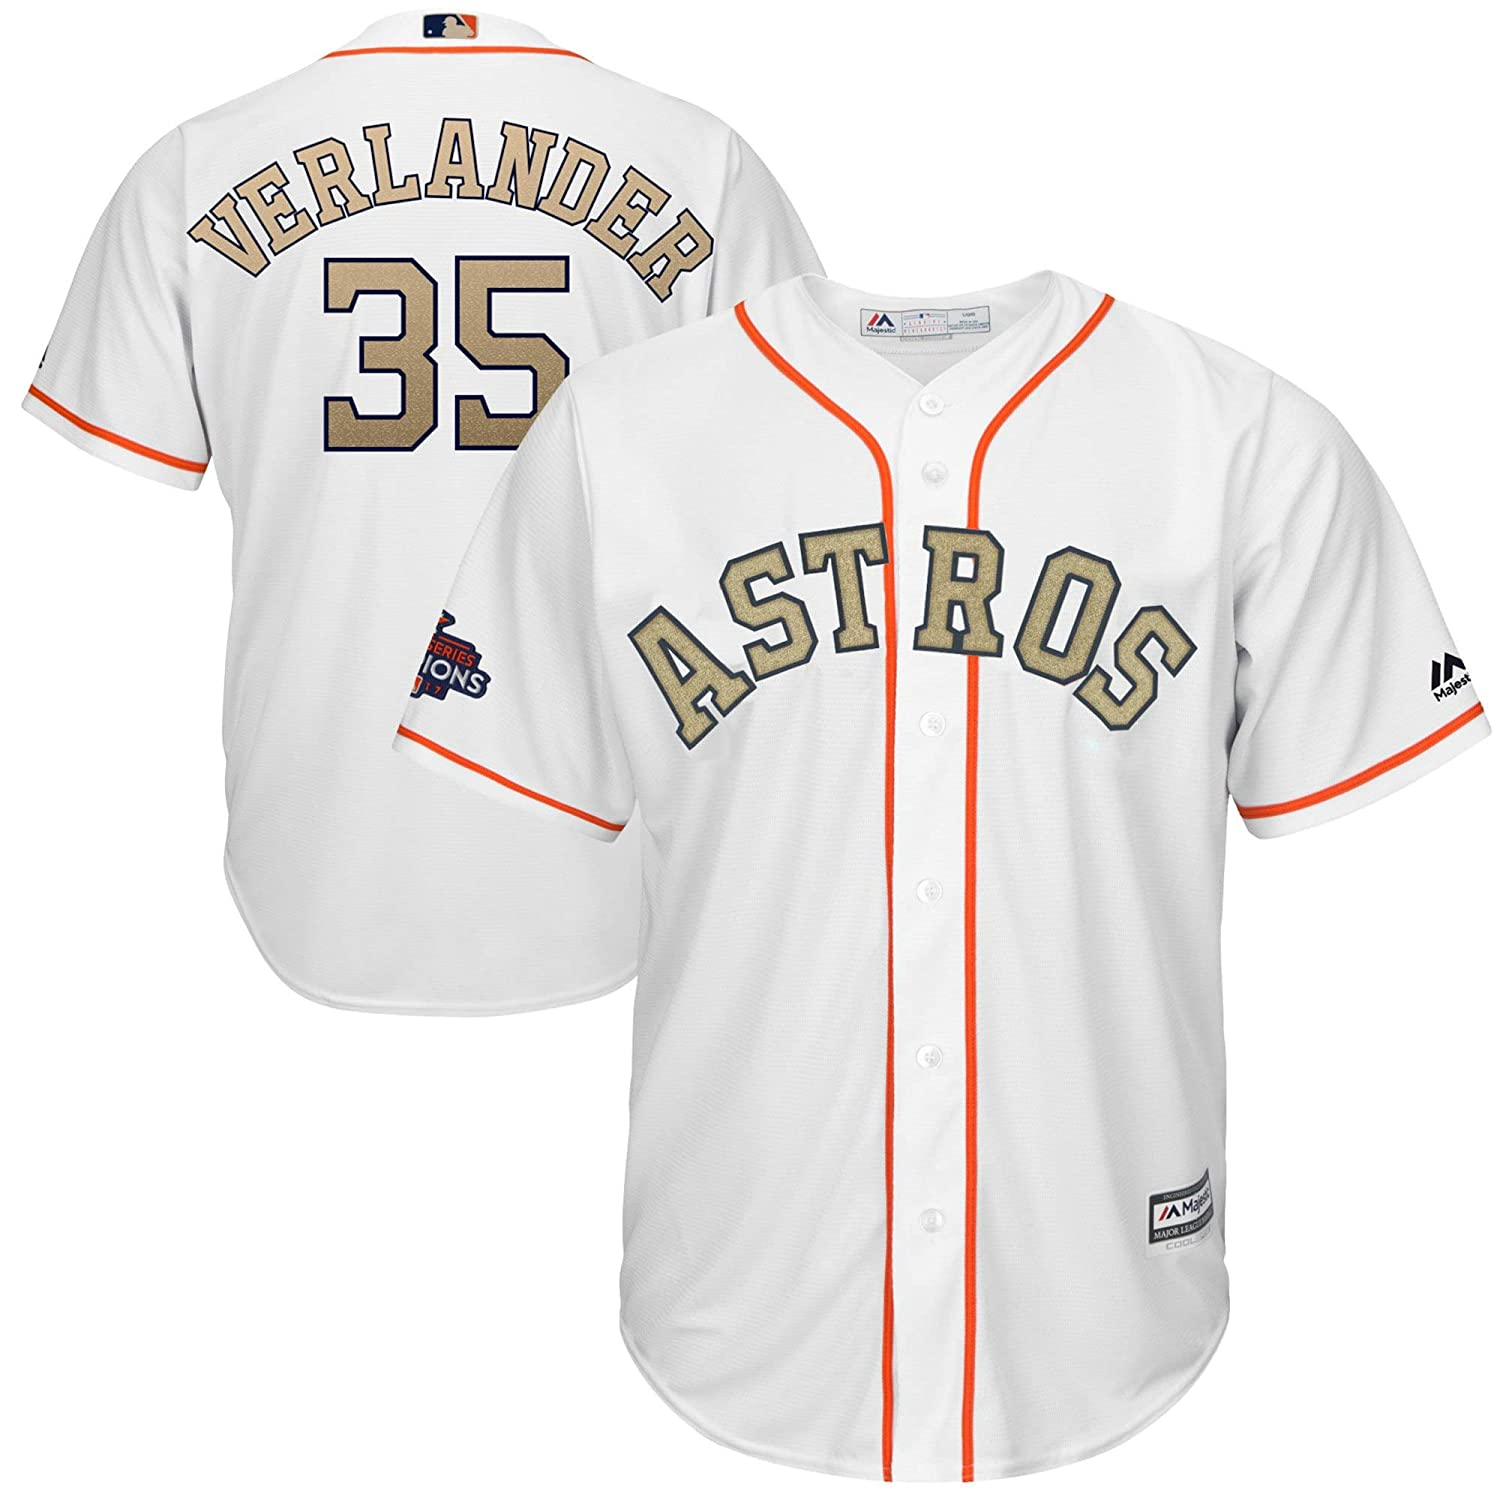 watch 1b942 449d2 Amazon.com : Outerstuff Justin Verlander Houston Astros #35 ...